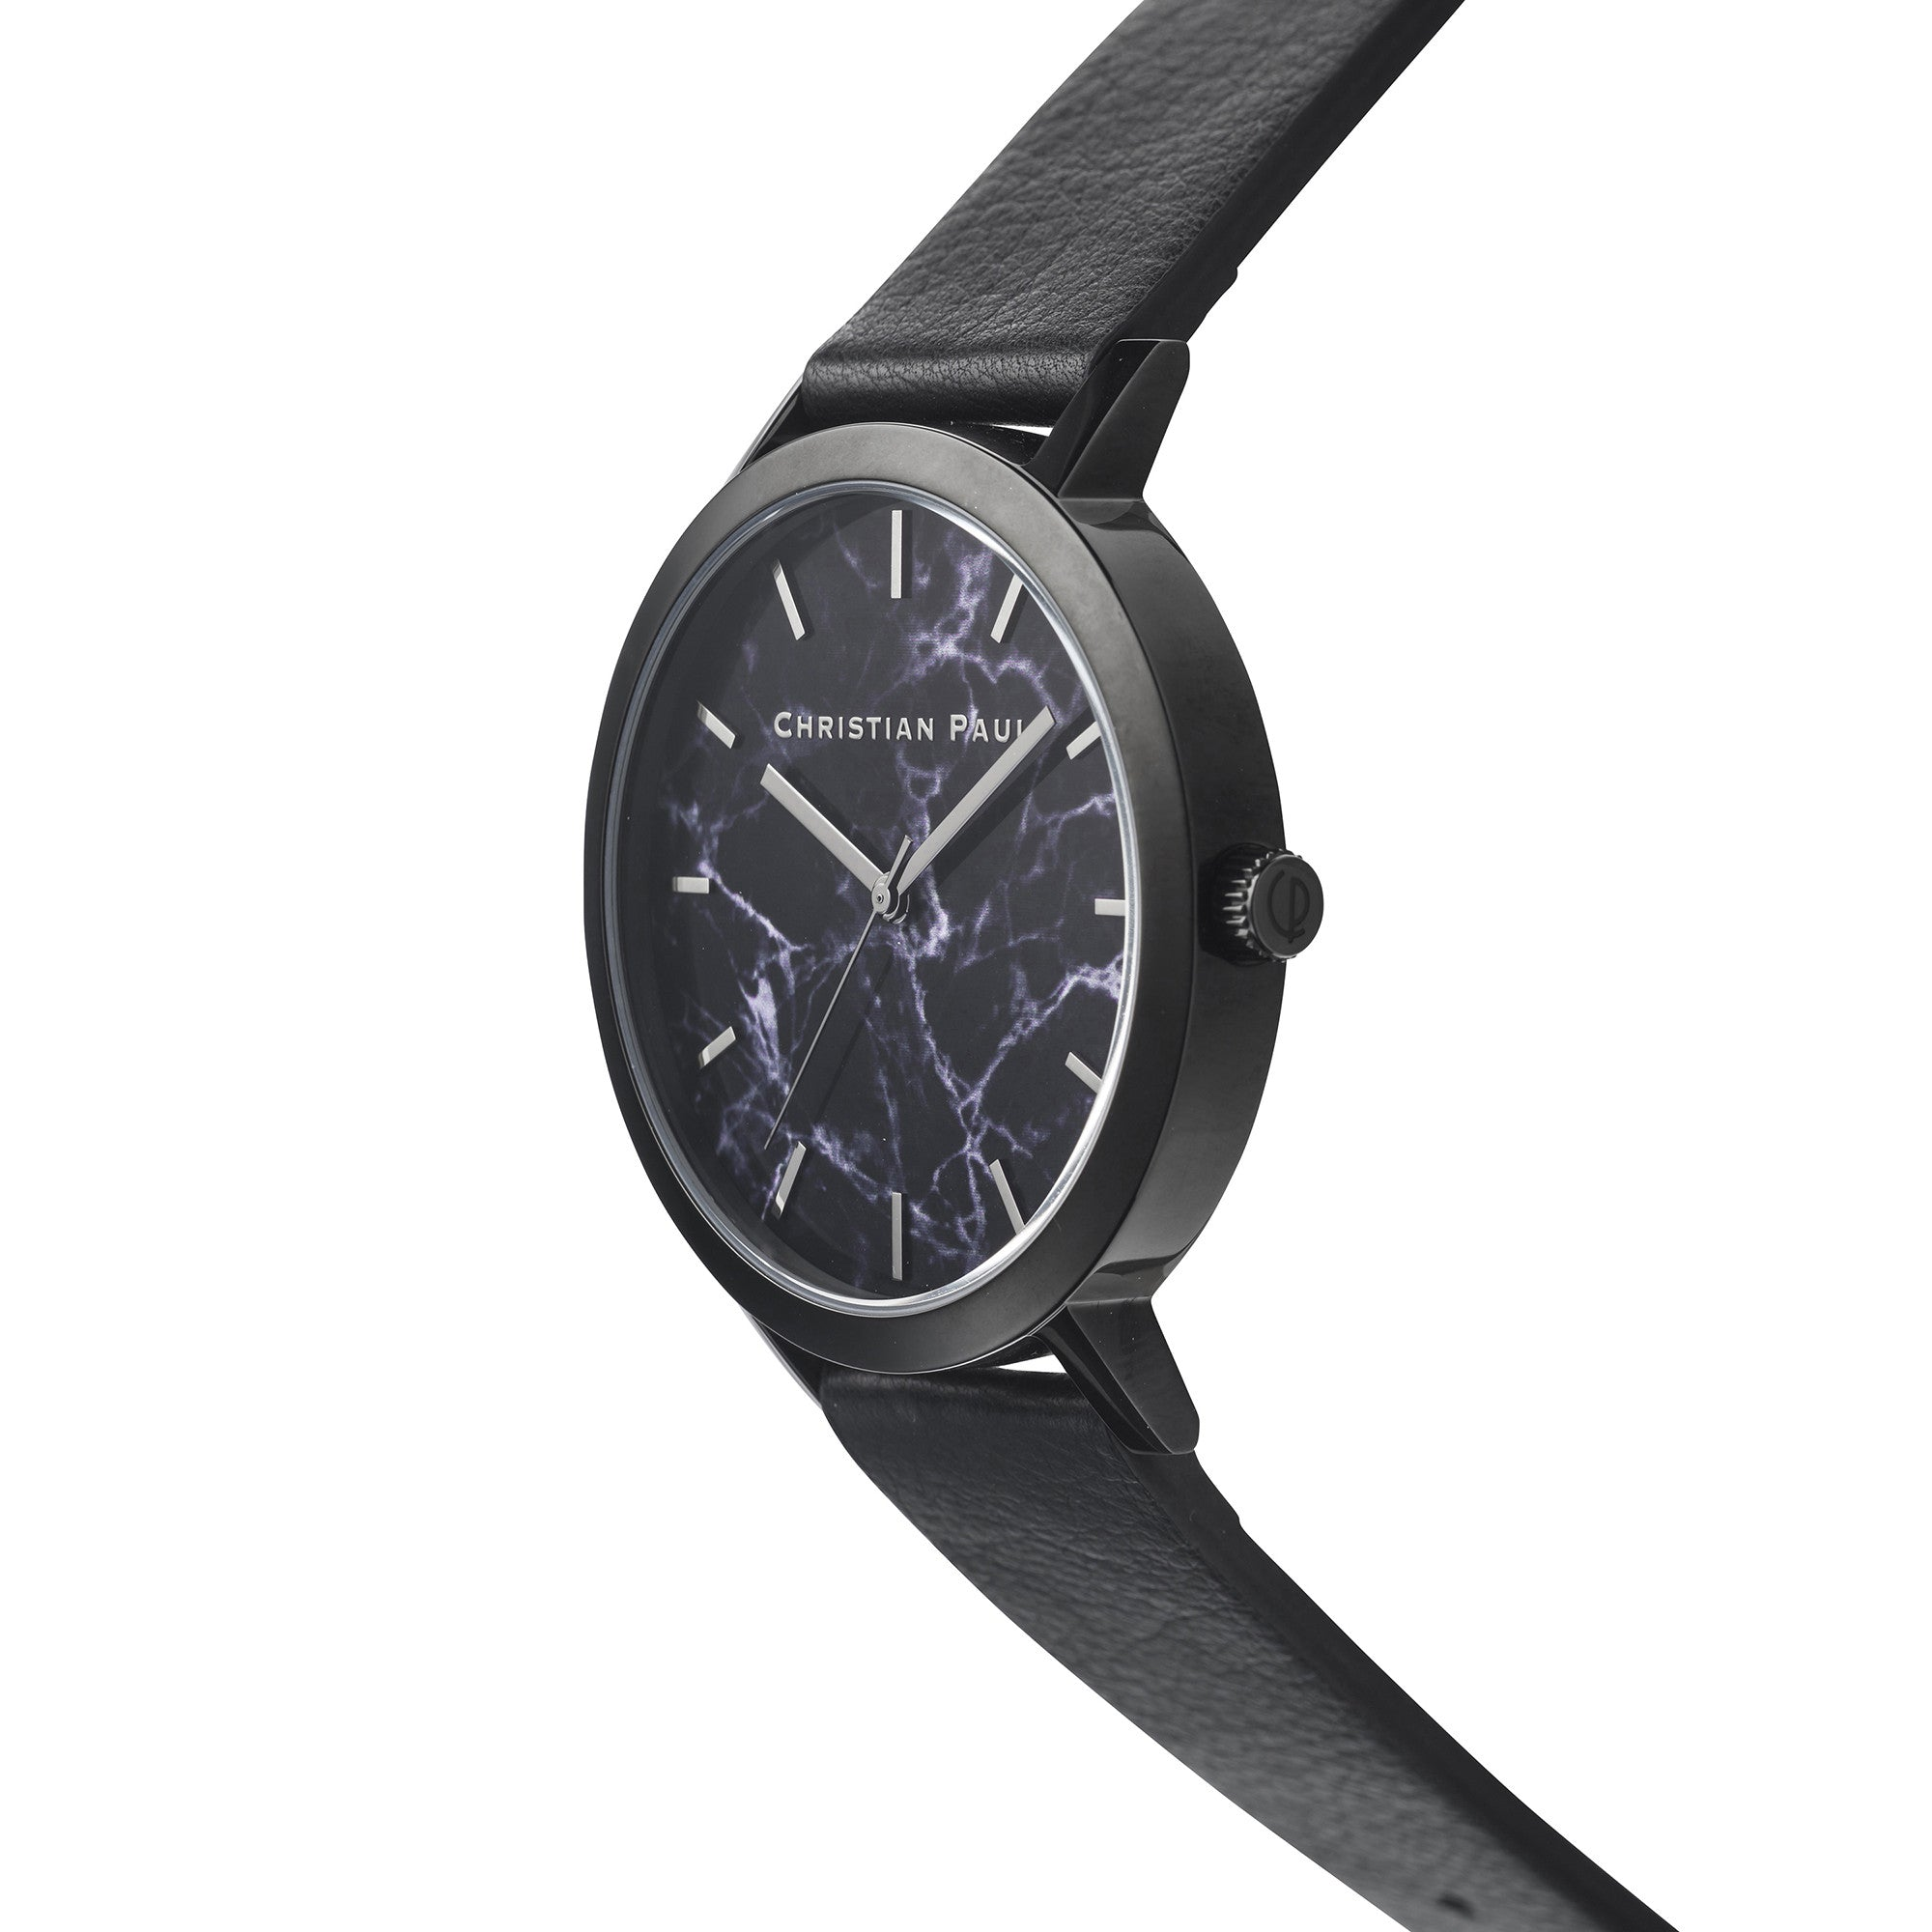 Christian Paul Watch The Strand Marble 43mm / Black on Black | 101.Watch